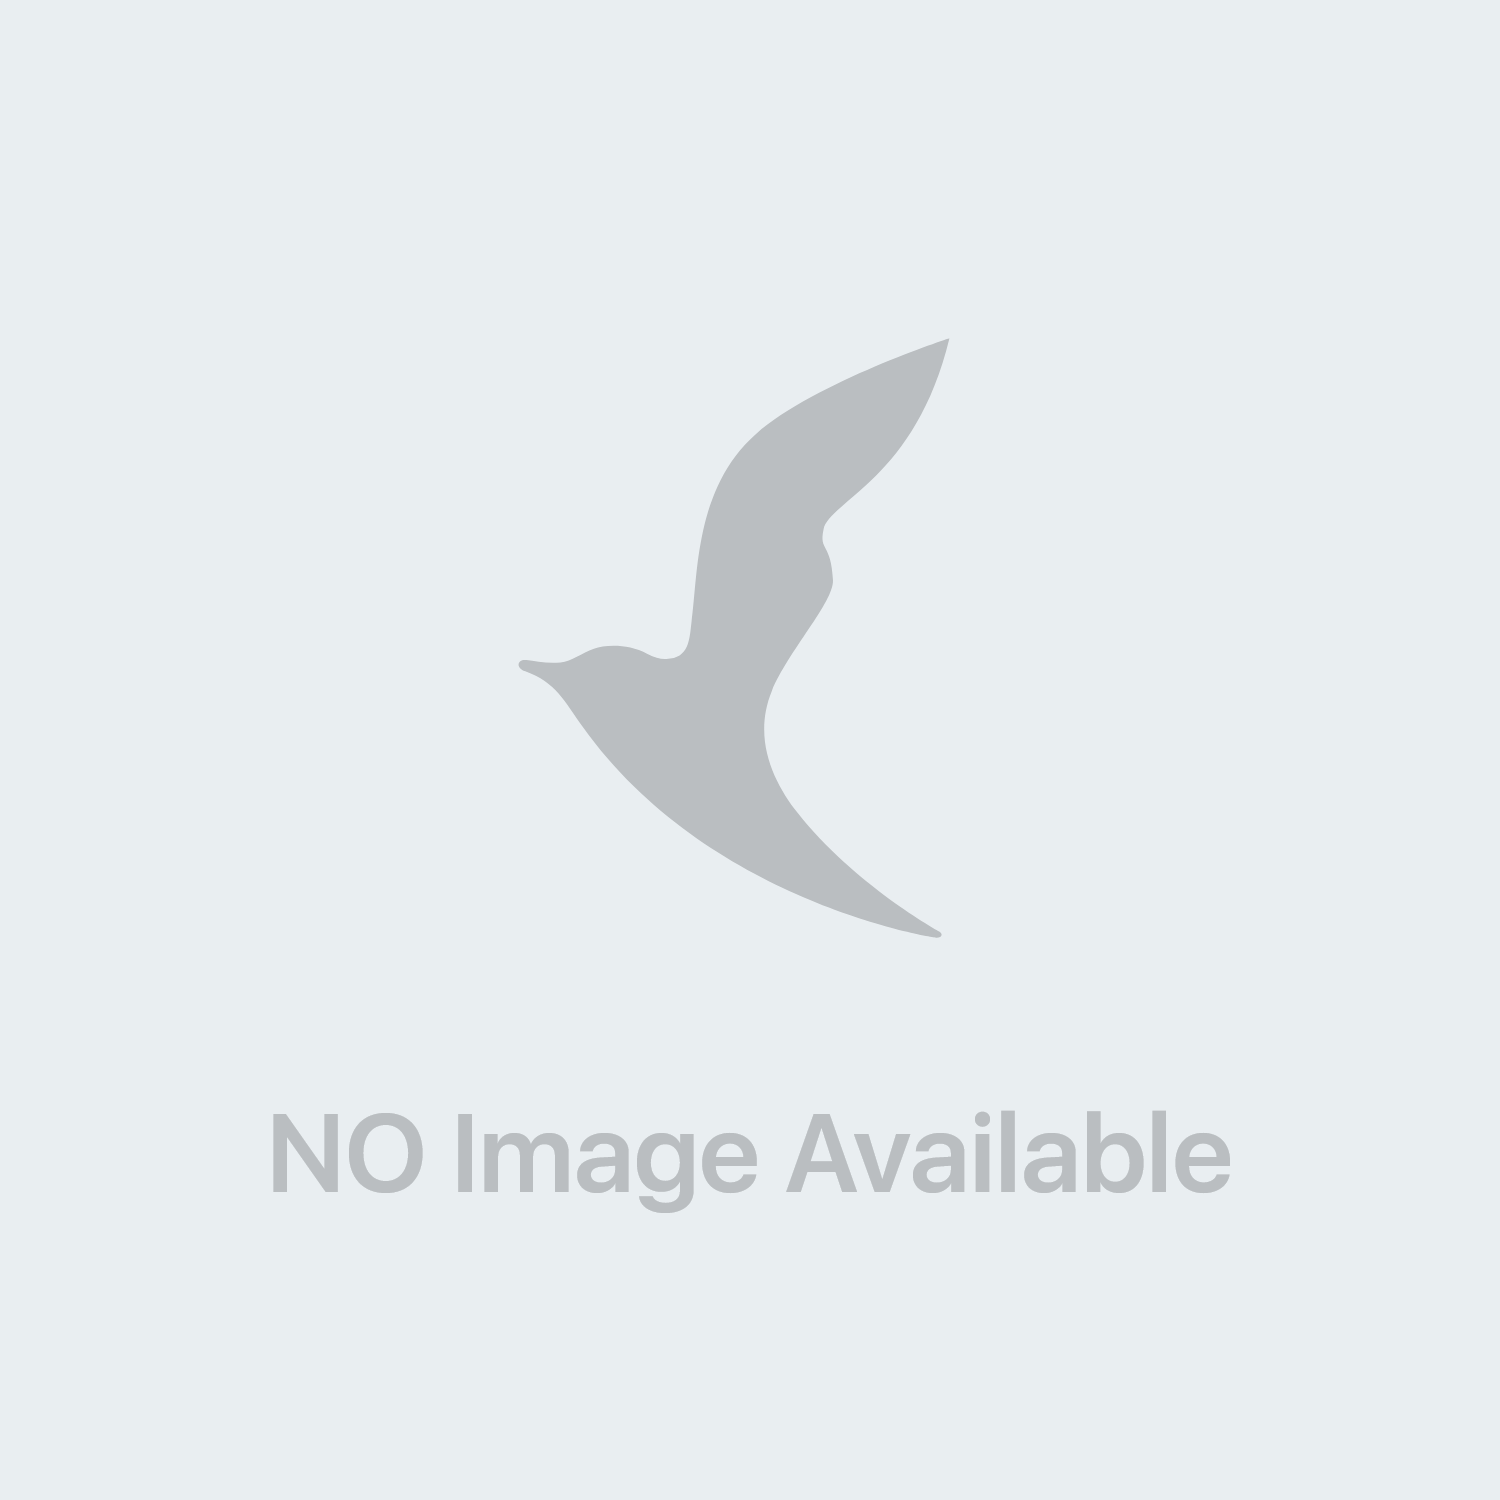 Planter's Acido Ialuronico Body Antiage Crema Corpo 200 Ml